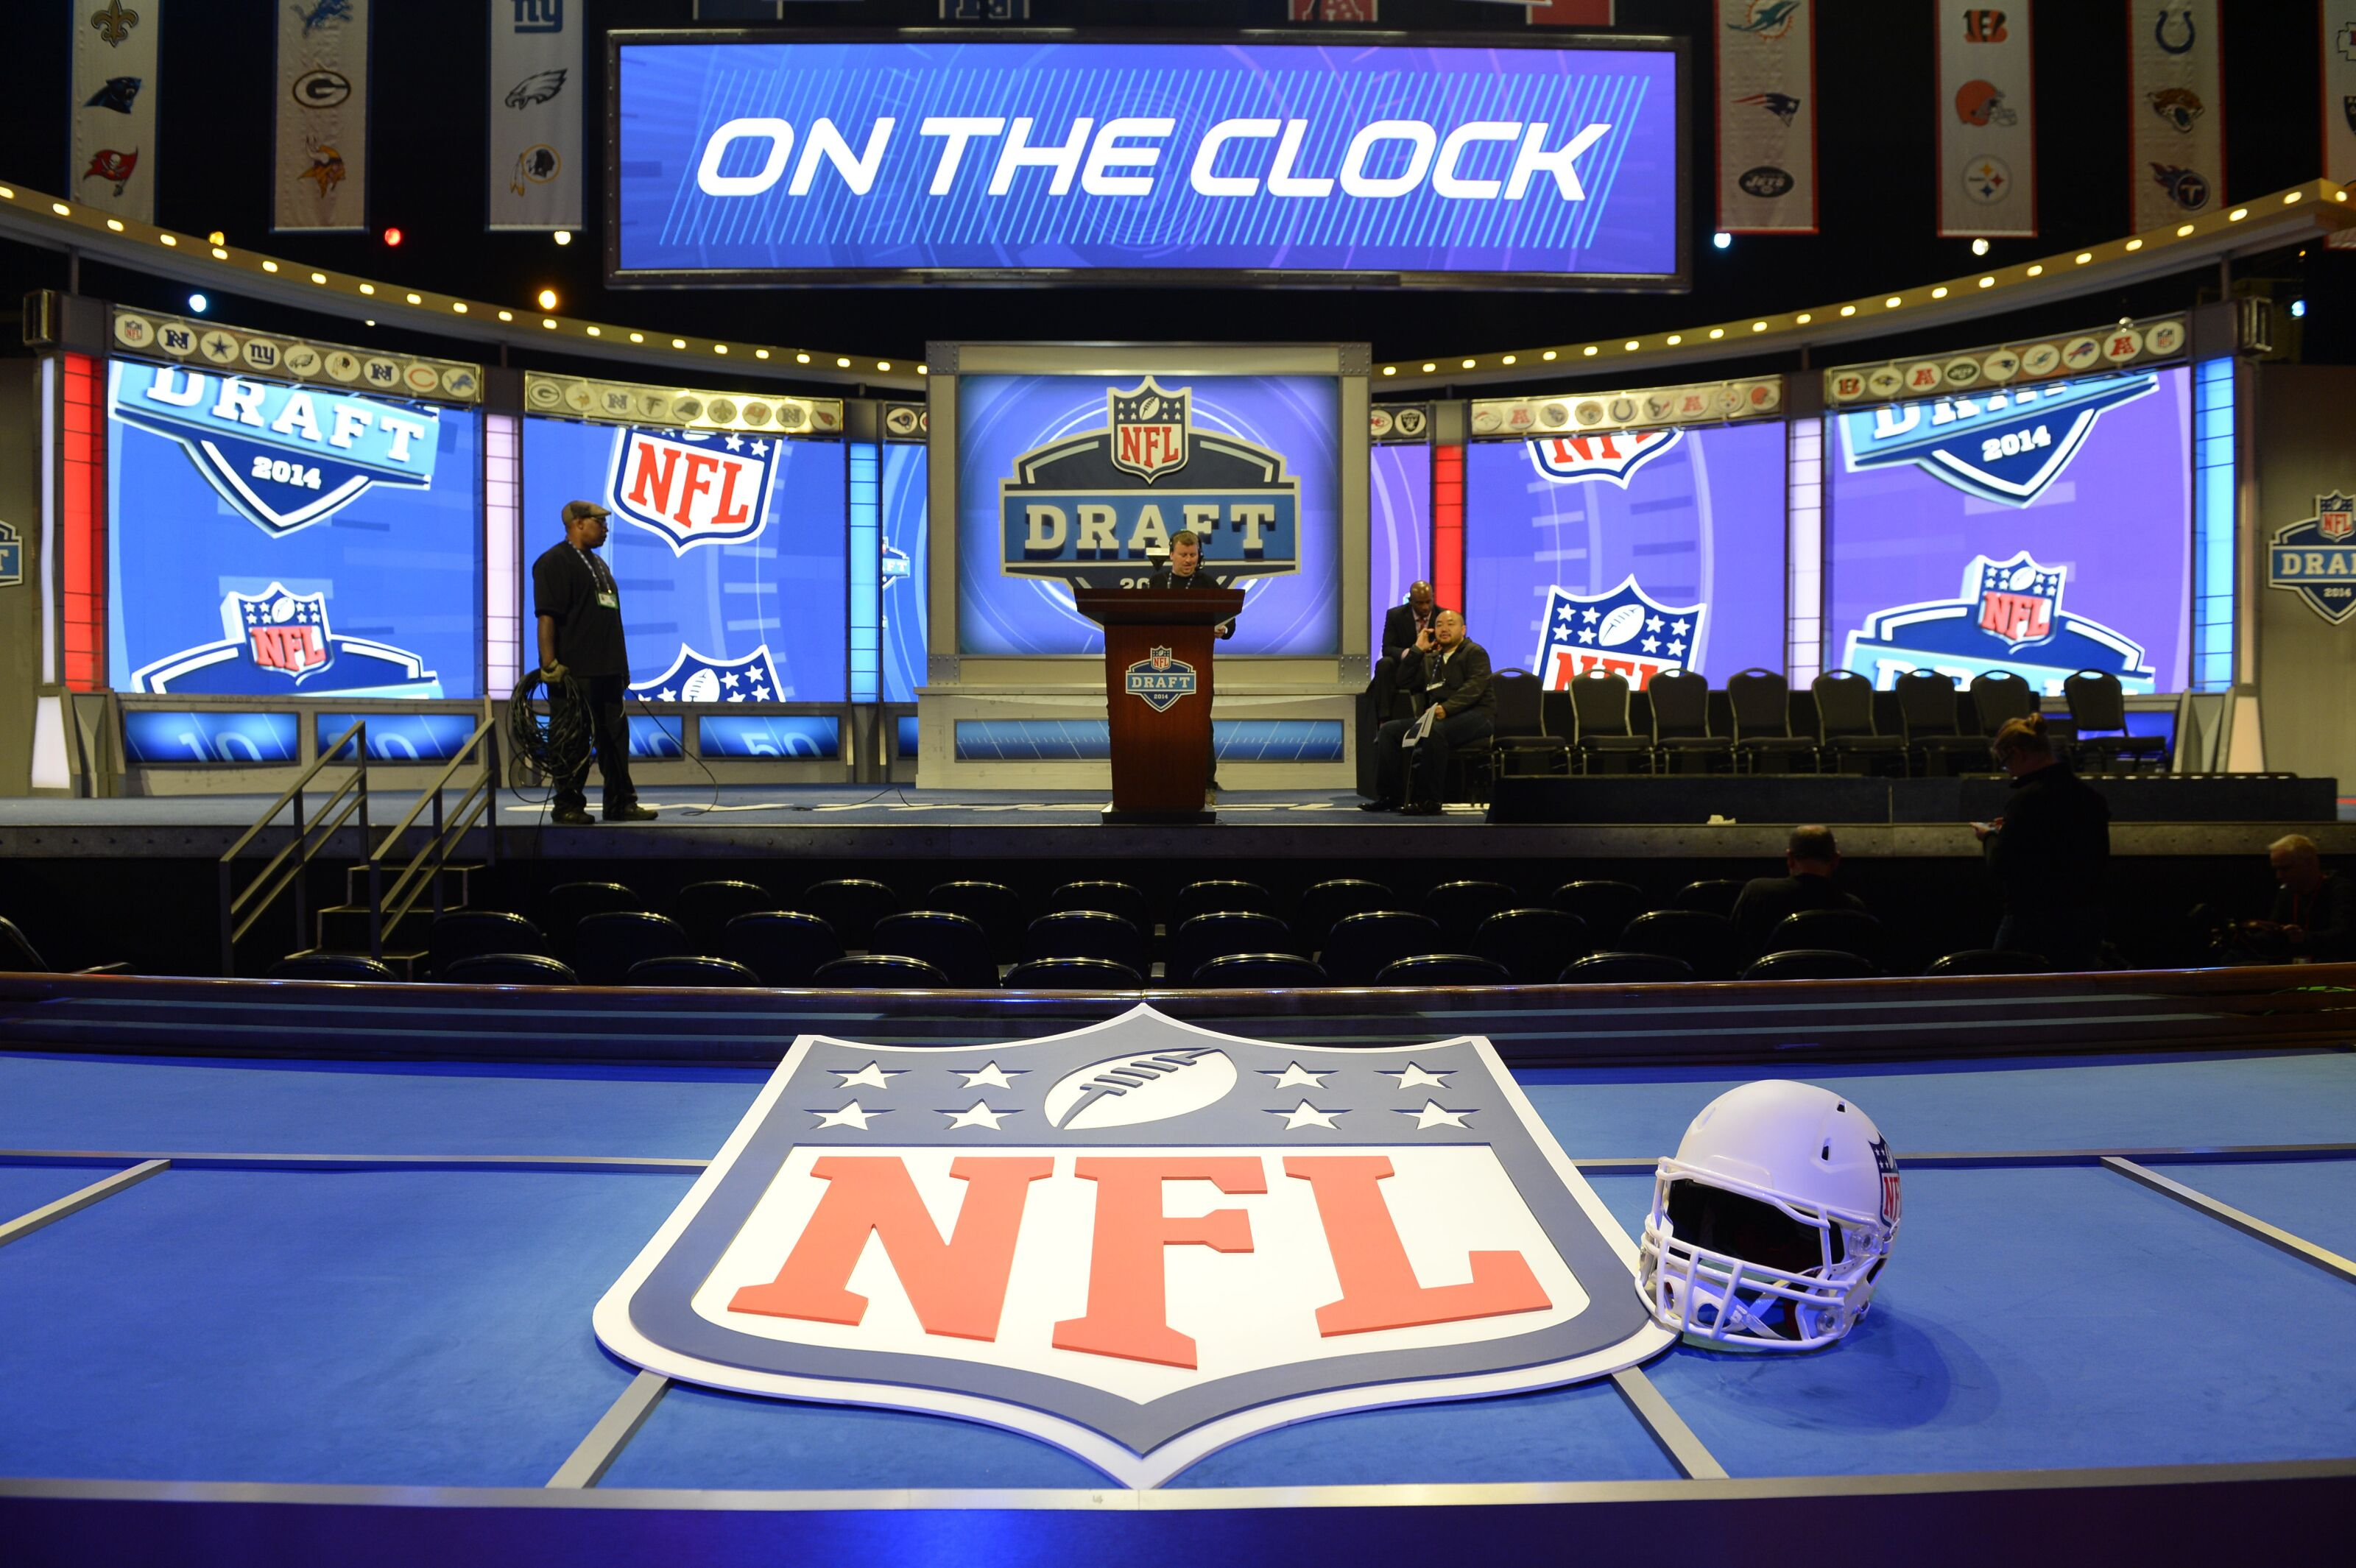 2019 NFL Draft: What channel is ESPN?